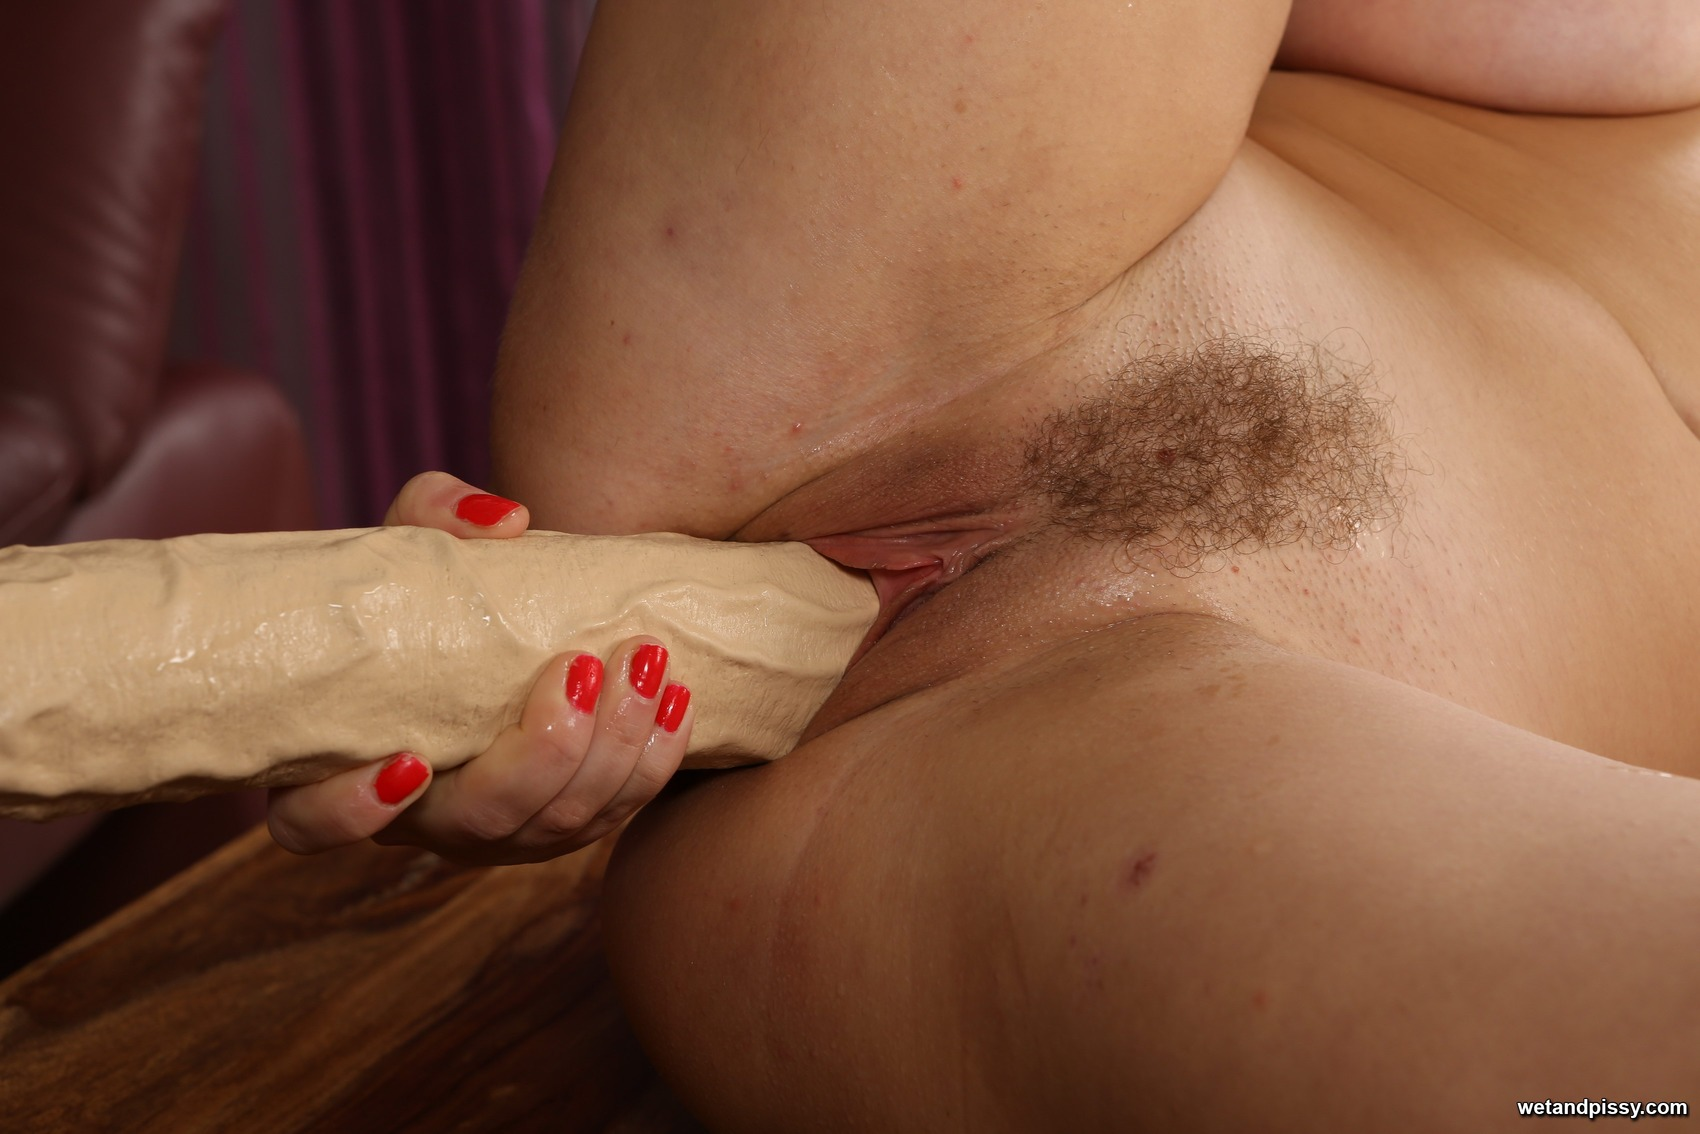 Wet And Pissy - Tanika 96253-3583